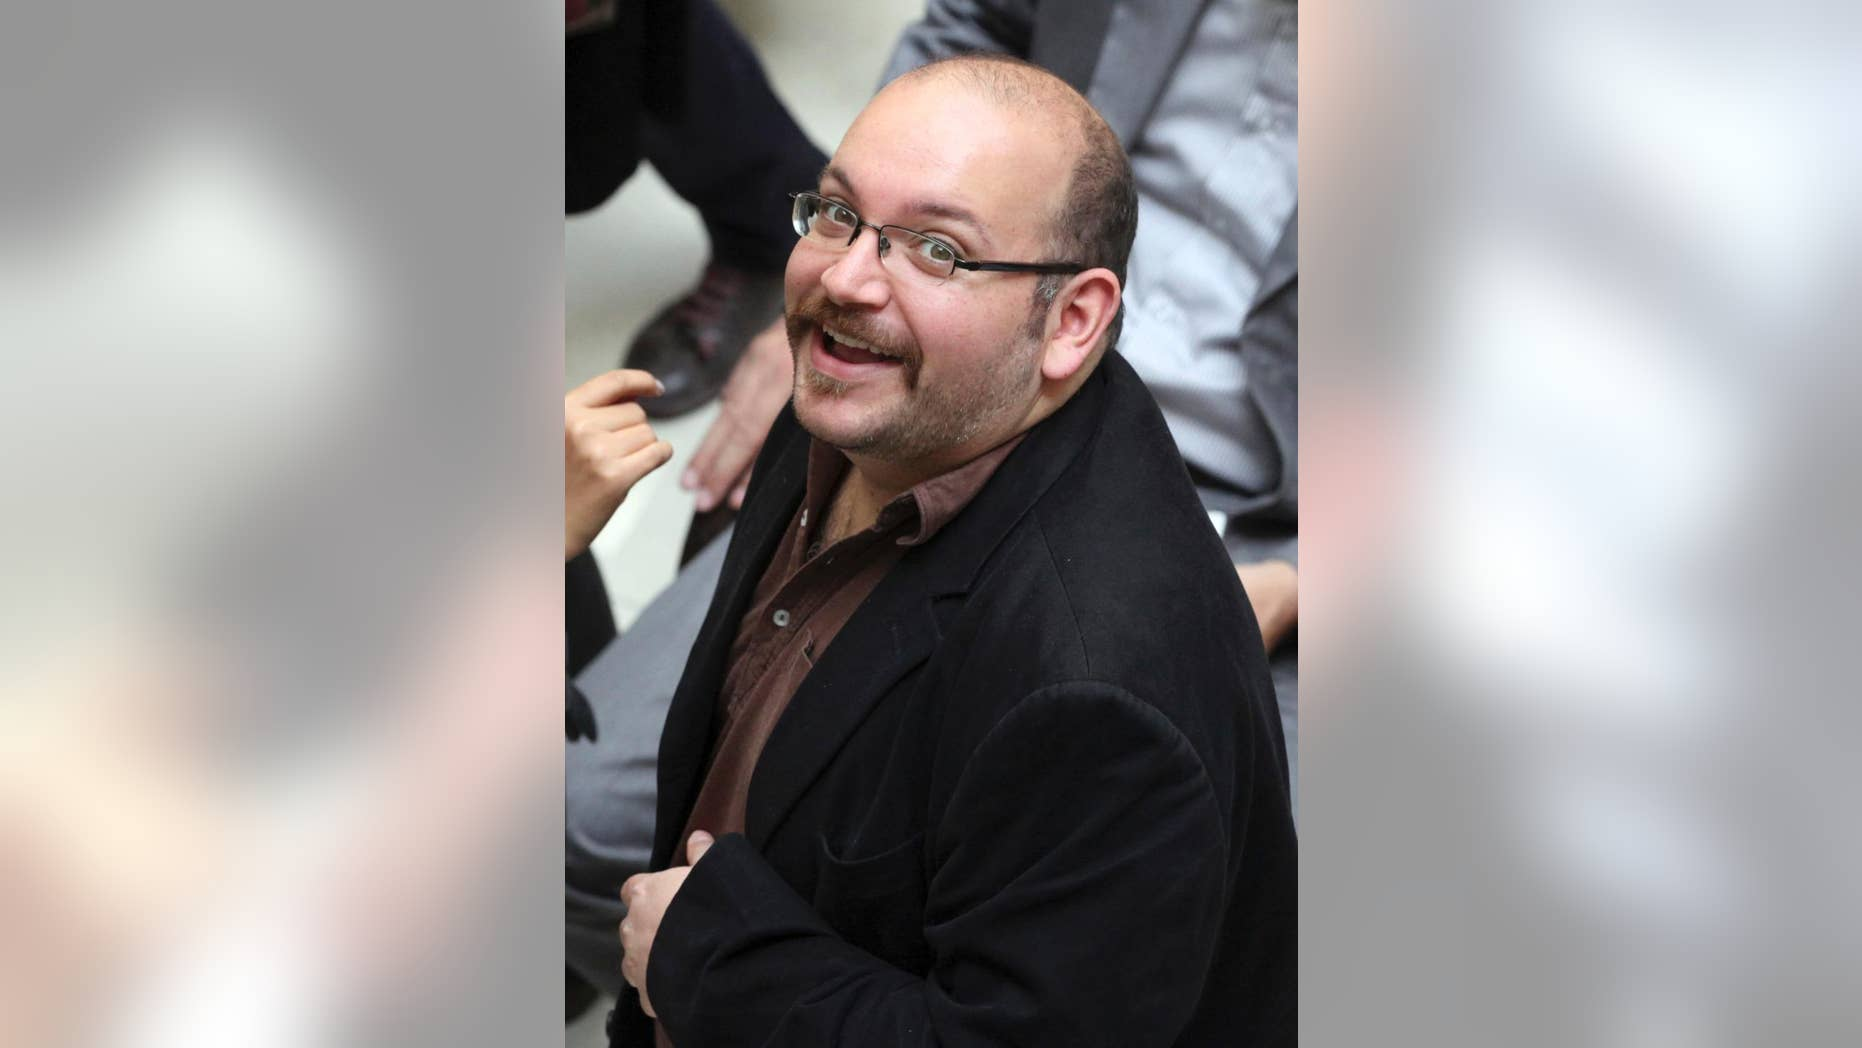 """FILE - In this photo April 11, 2013 file photo, Jason Rezaian, an Iranian-American correspondent for the Washington Post smiles as he attends a presidential campaign of President Hassan Rouhani in Tehran, Iran. The family of Rezaian jailed without charge in Iran is urging authorities in Tehran to release him, calling his incarceration a """"farce"""" 100 days after he was detained. (AP Photo/Vahid Salemi, File)"""